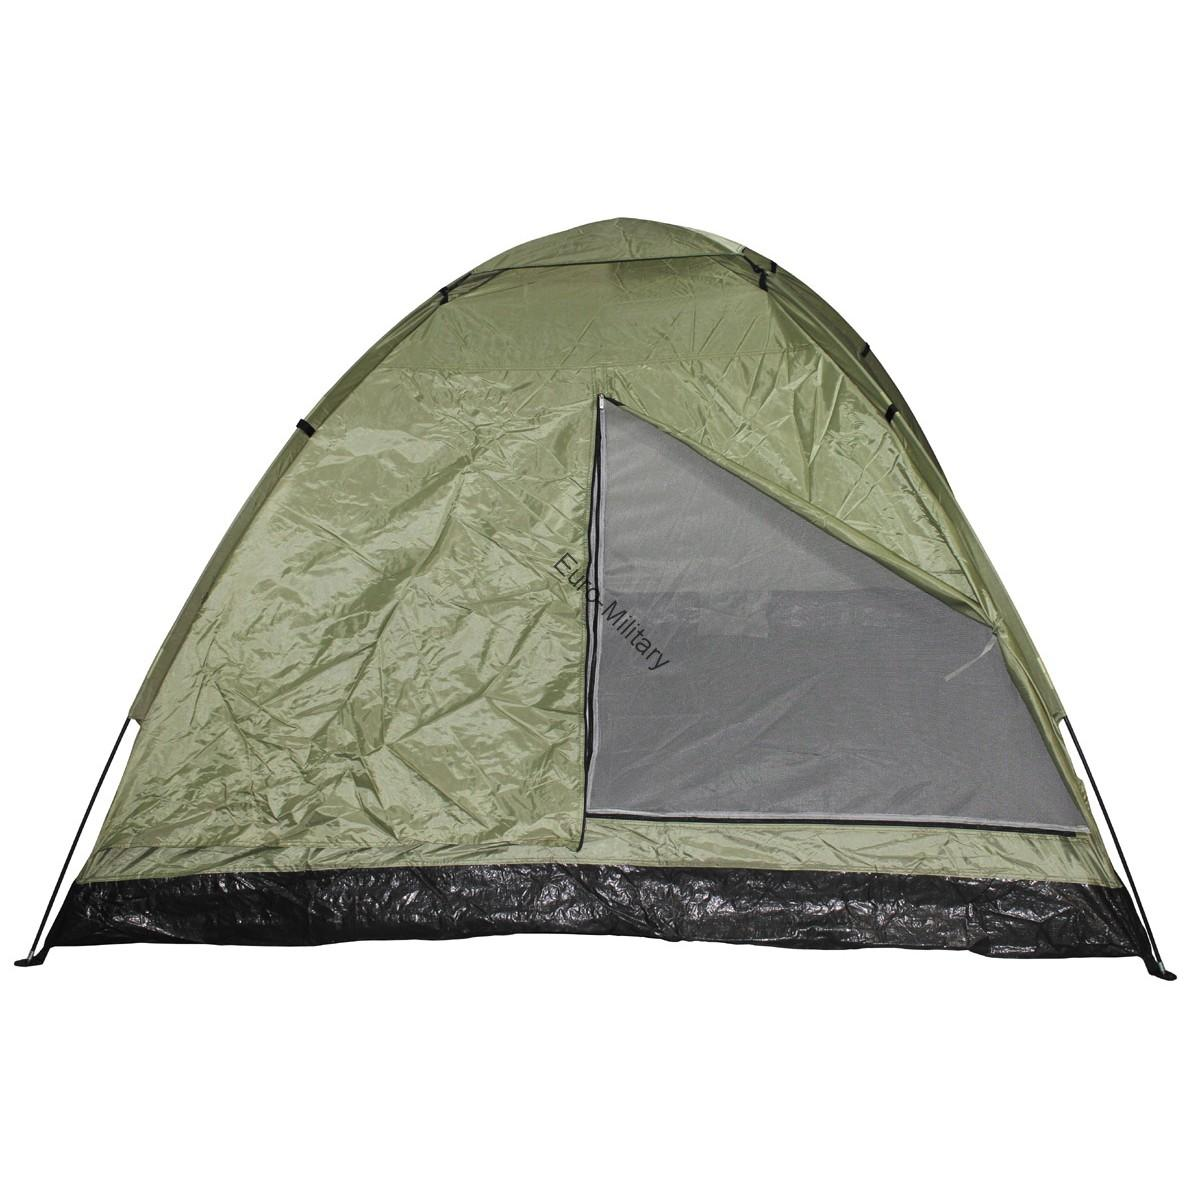 Military Tactical 3 Man Monodom Outdoor OD Green Shelter Tent